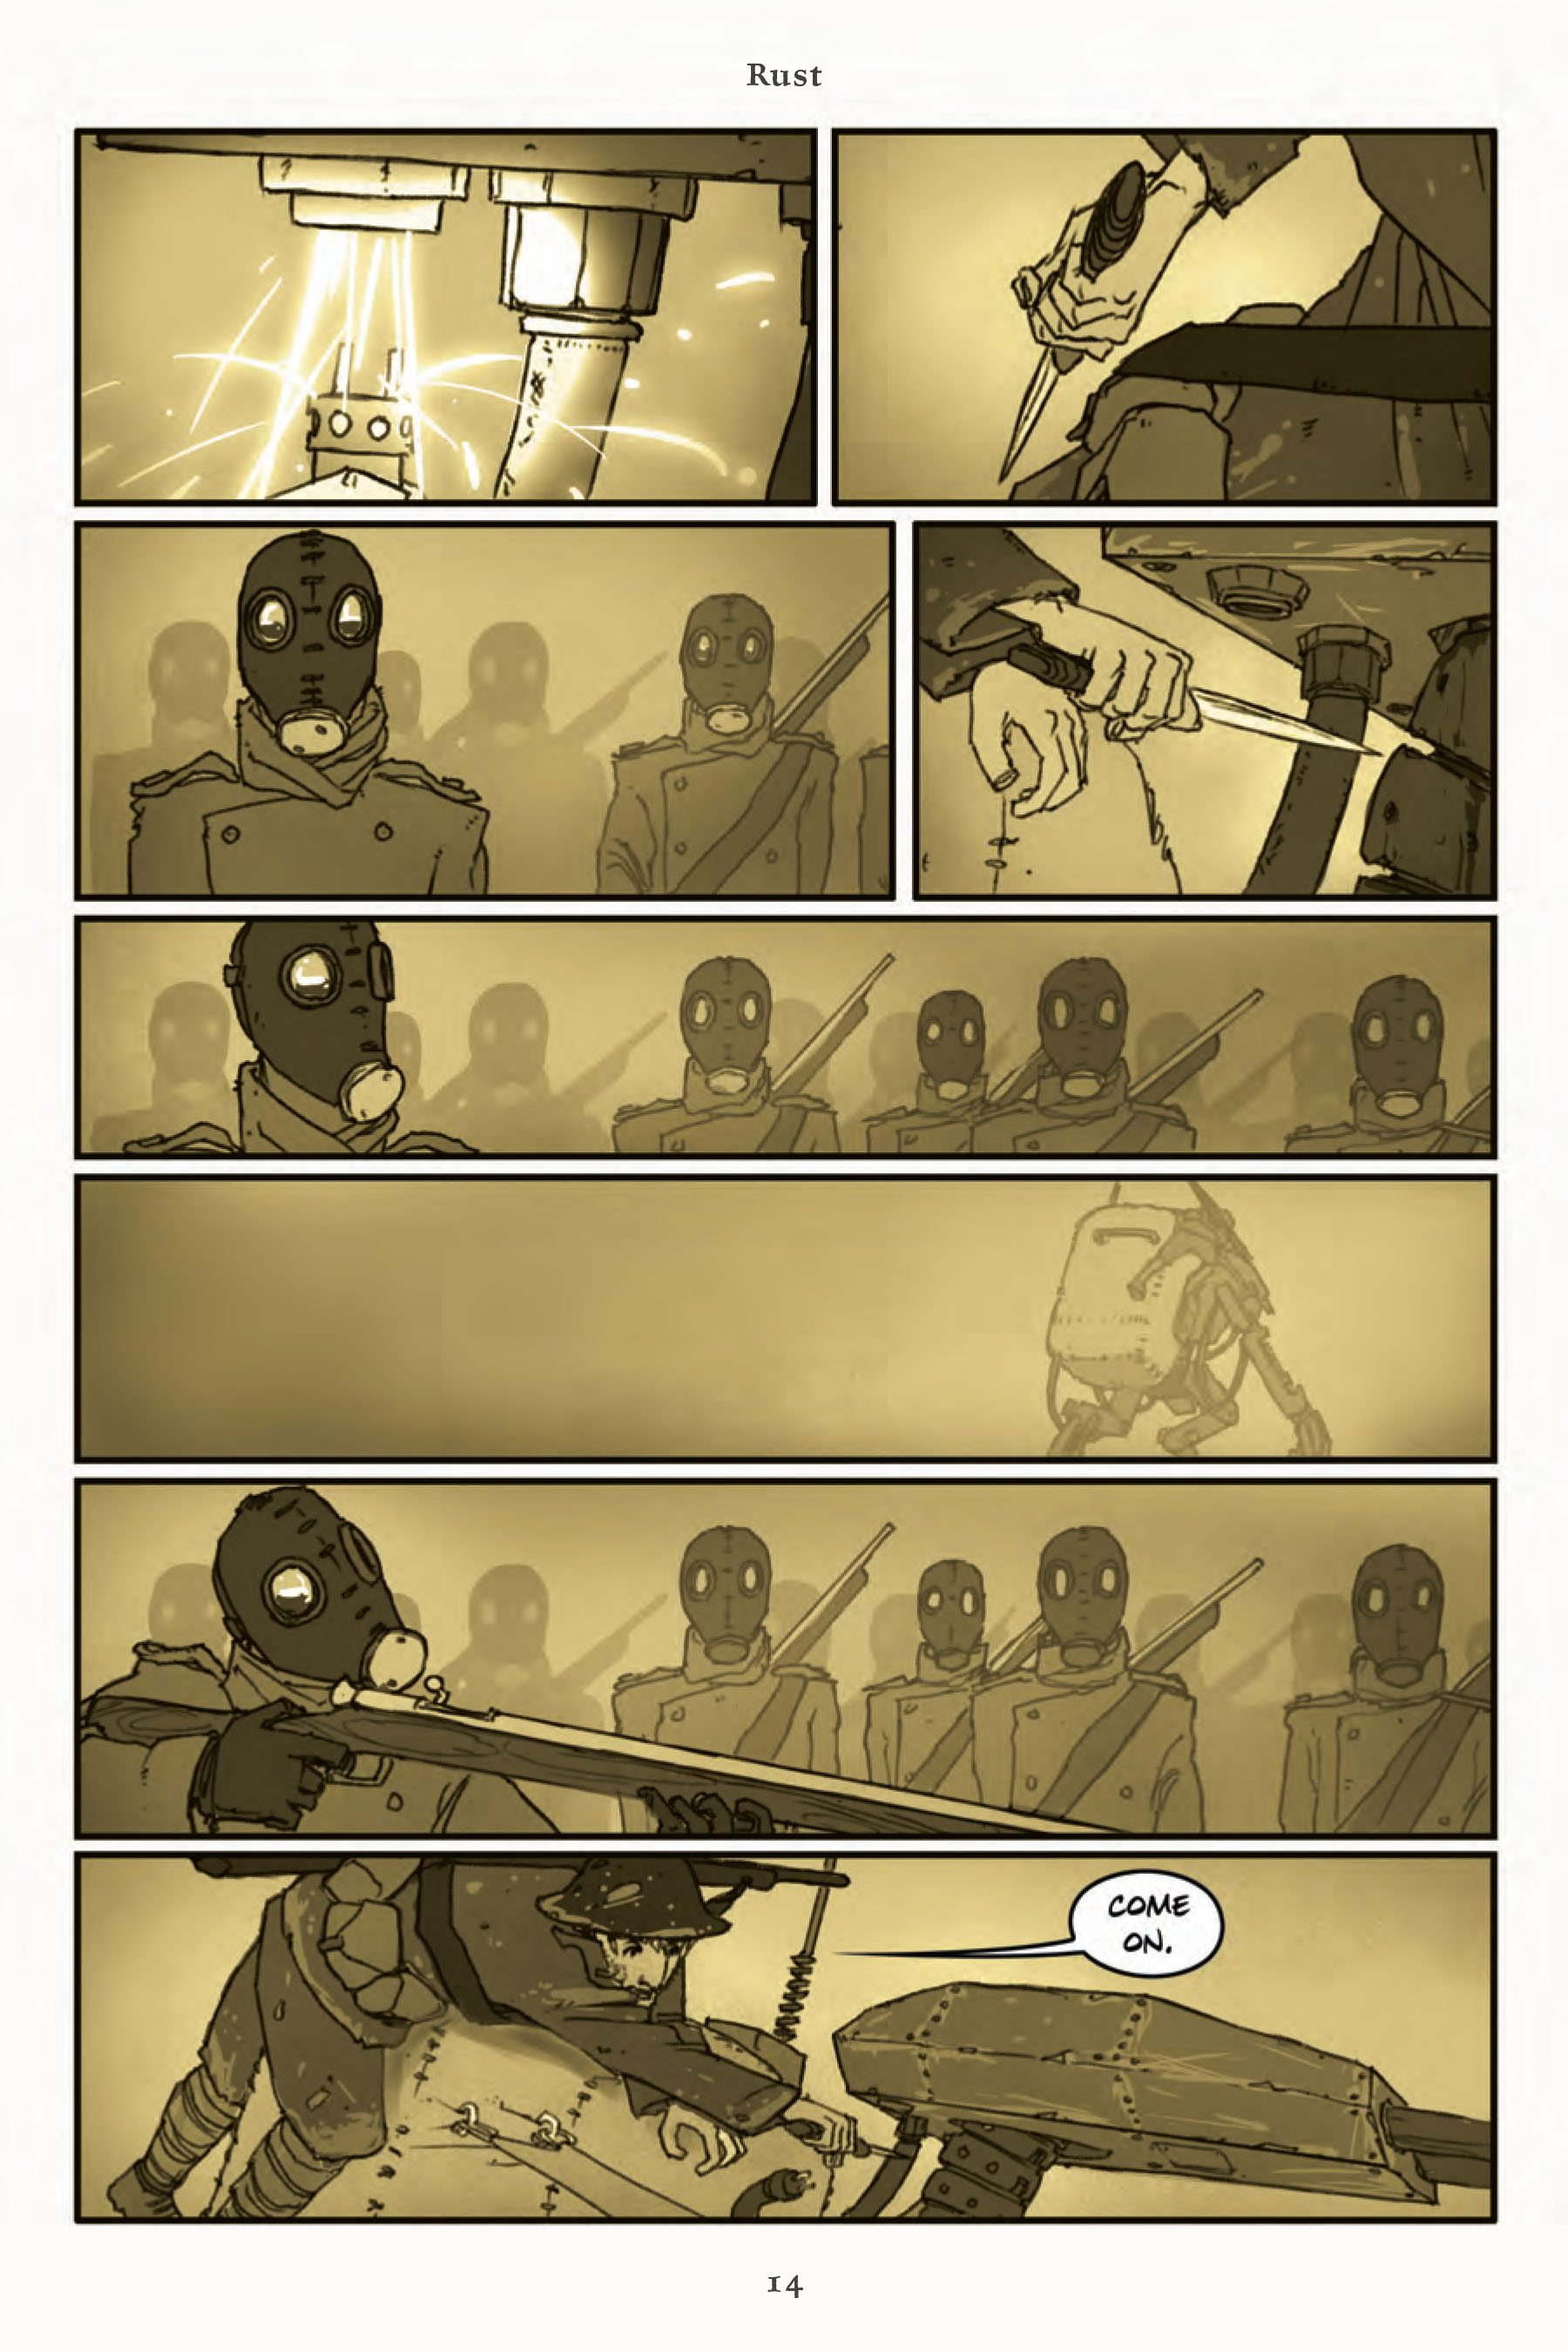 Rust_The_Boy_Soldier_TP_Page_14